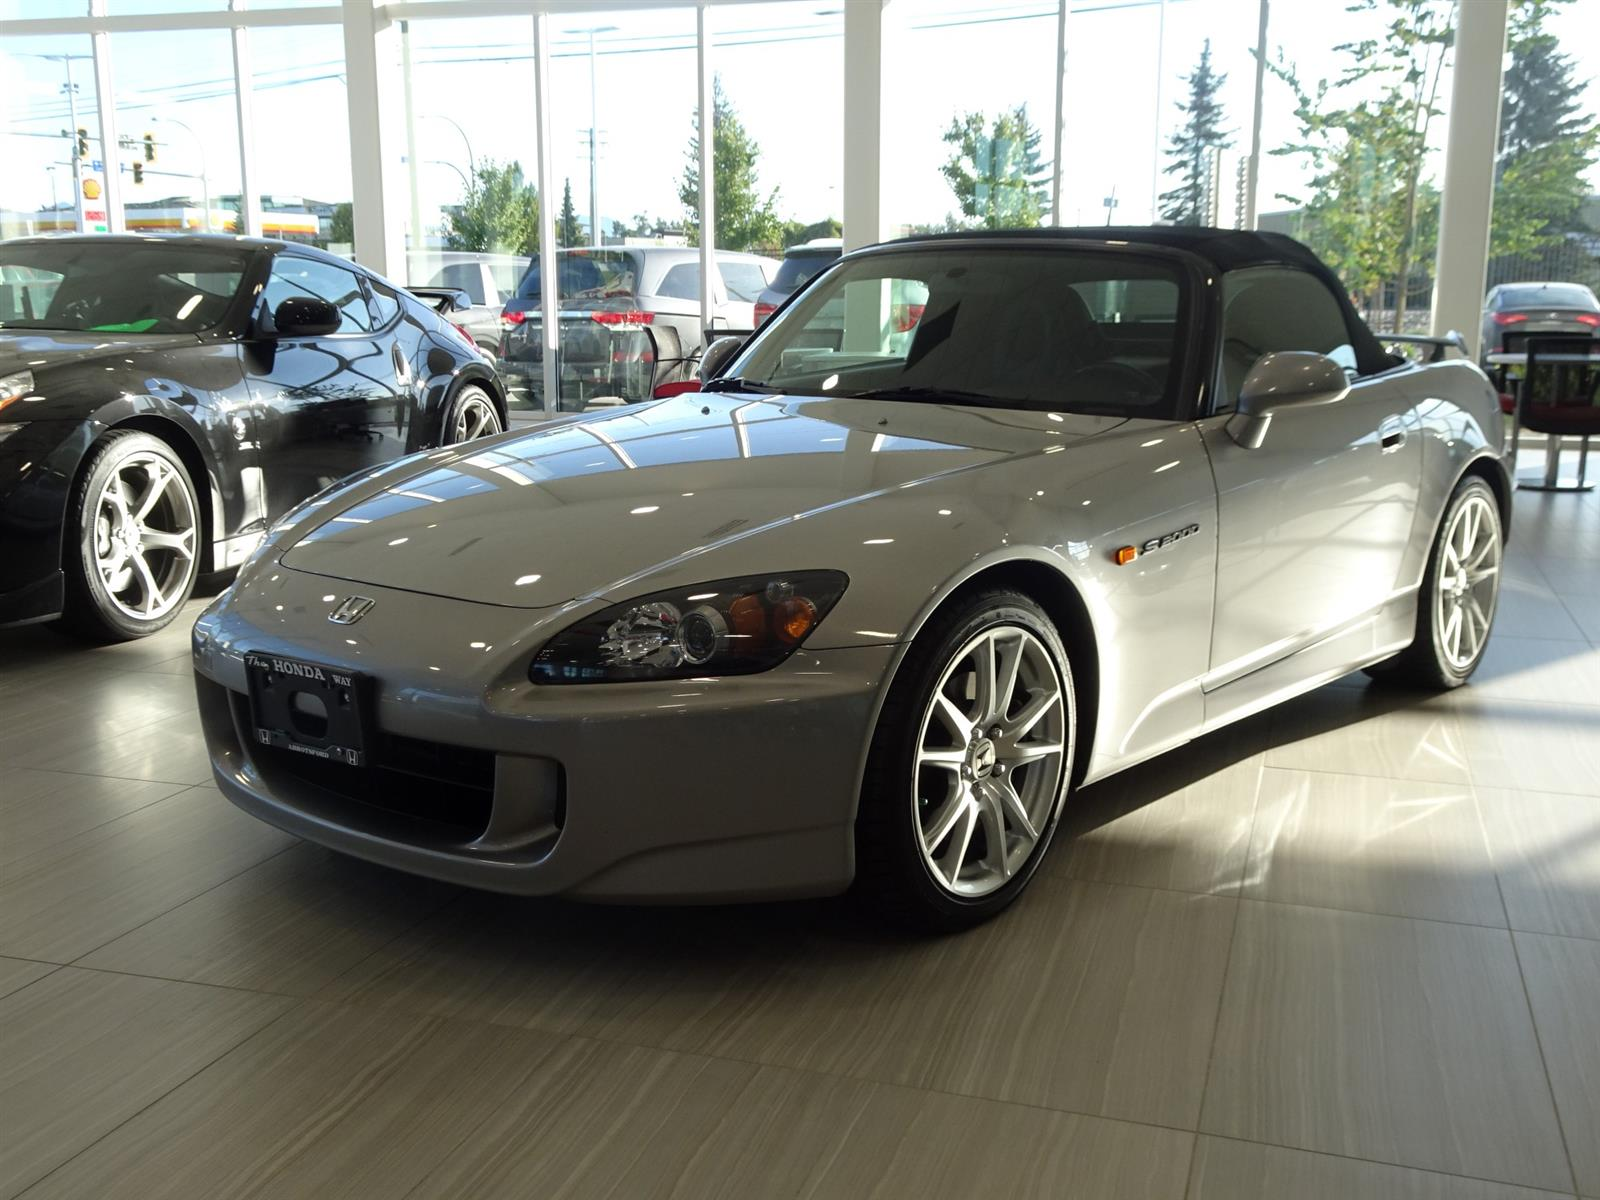 honda s2000 for sale great deals on honda s2000. Black Bedroom Furniture Sets. Home Design Ideas